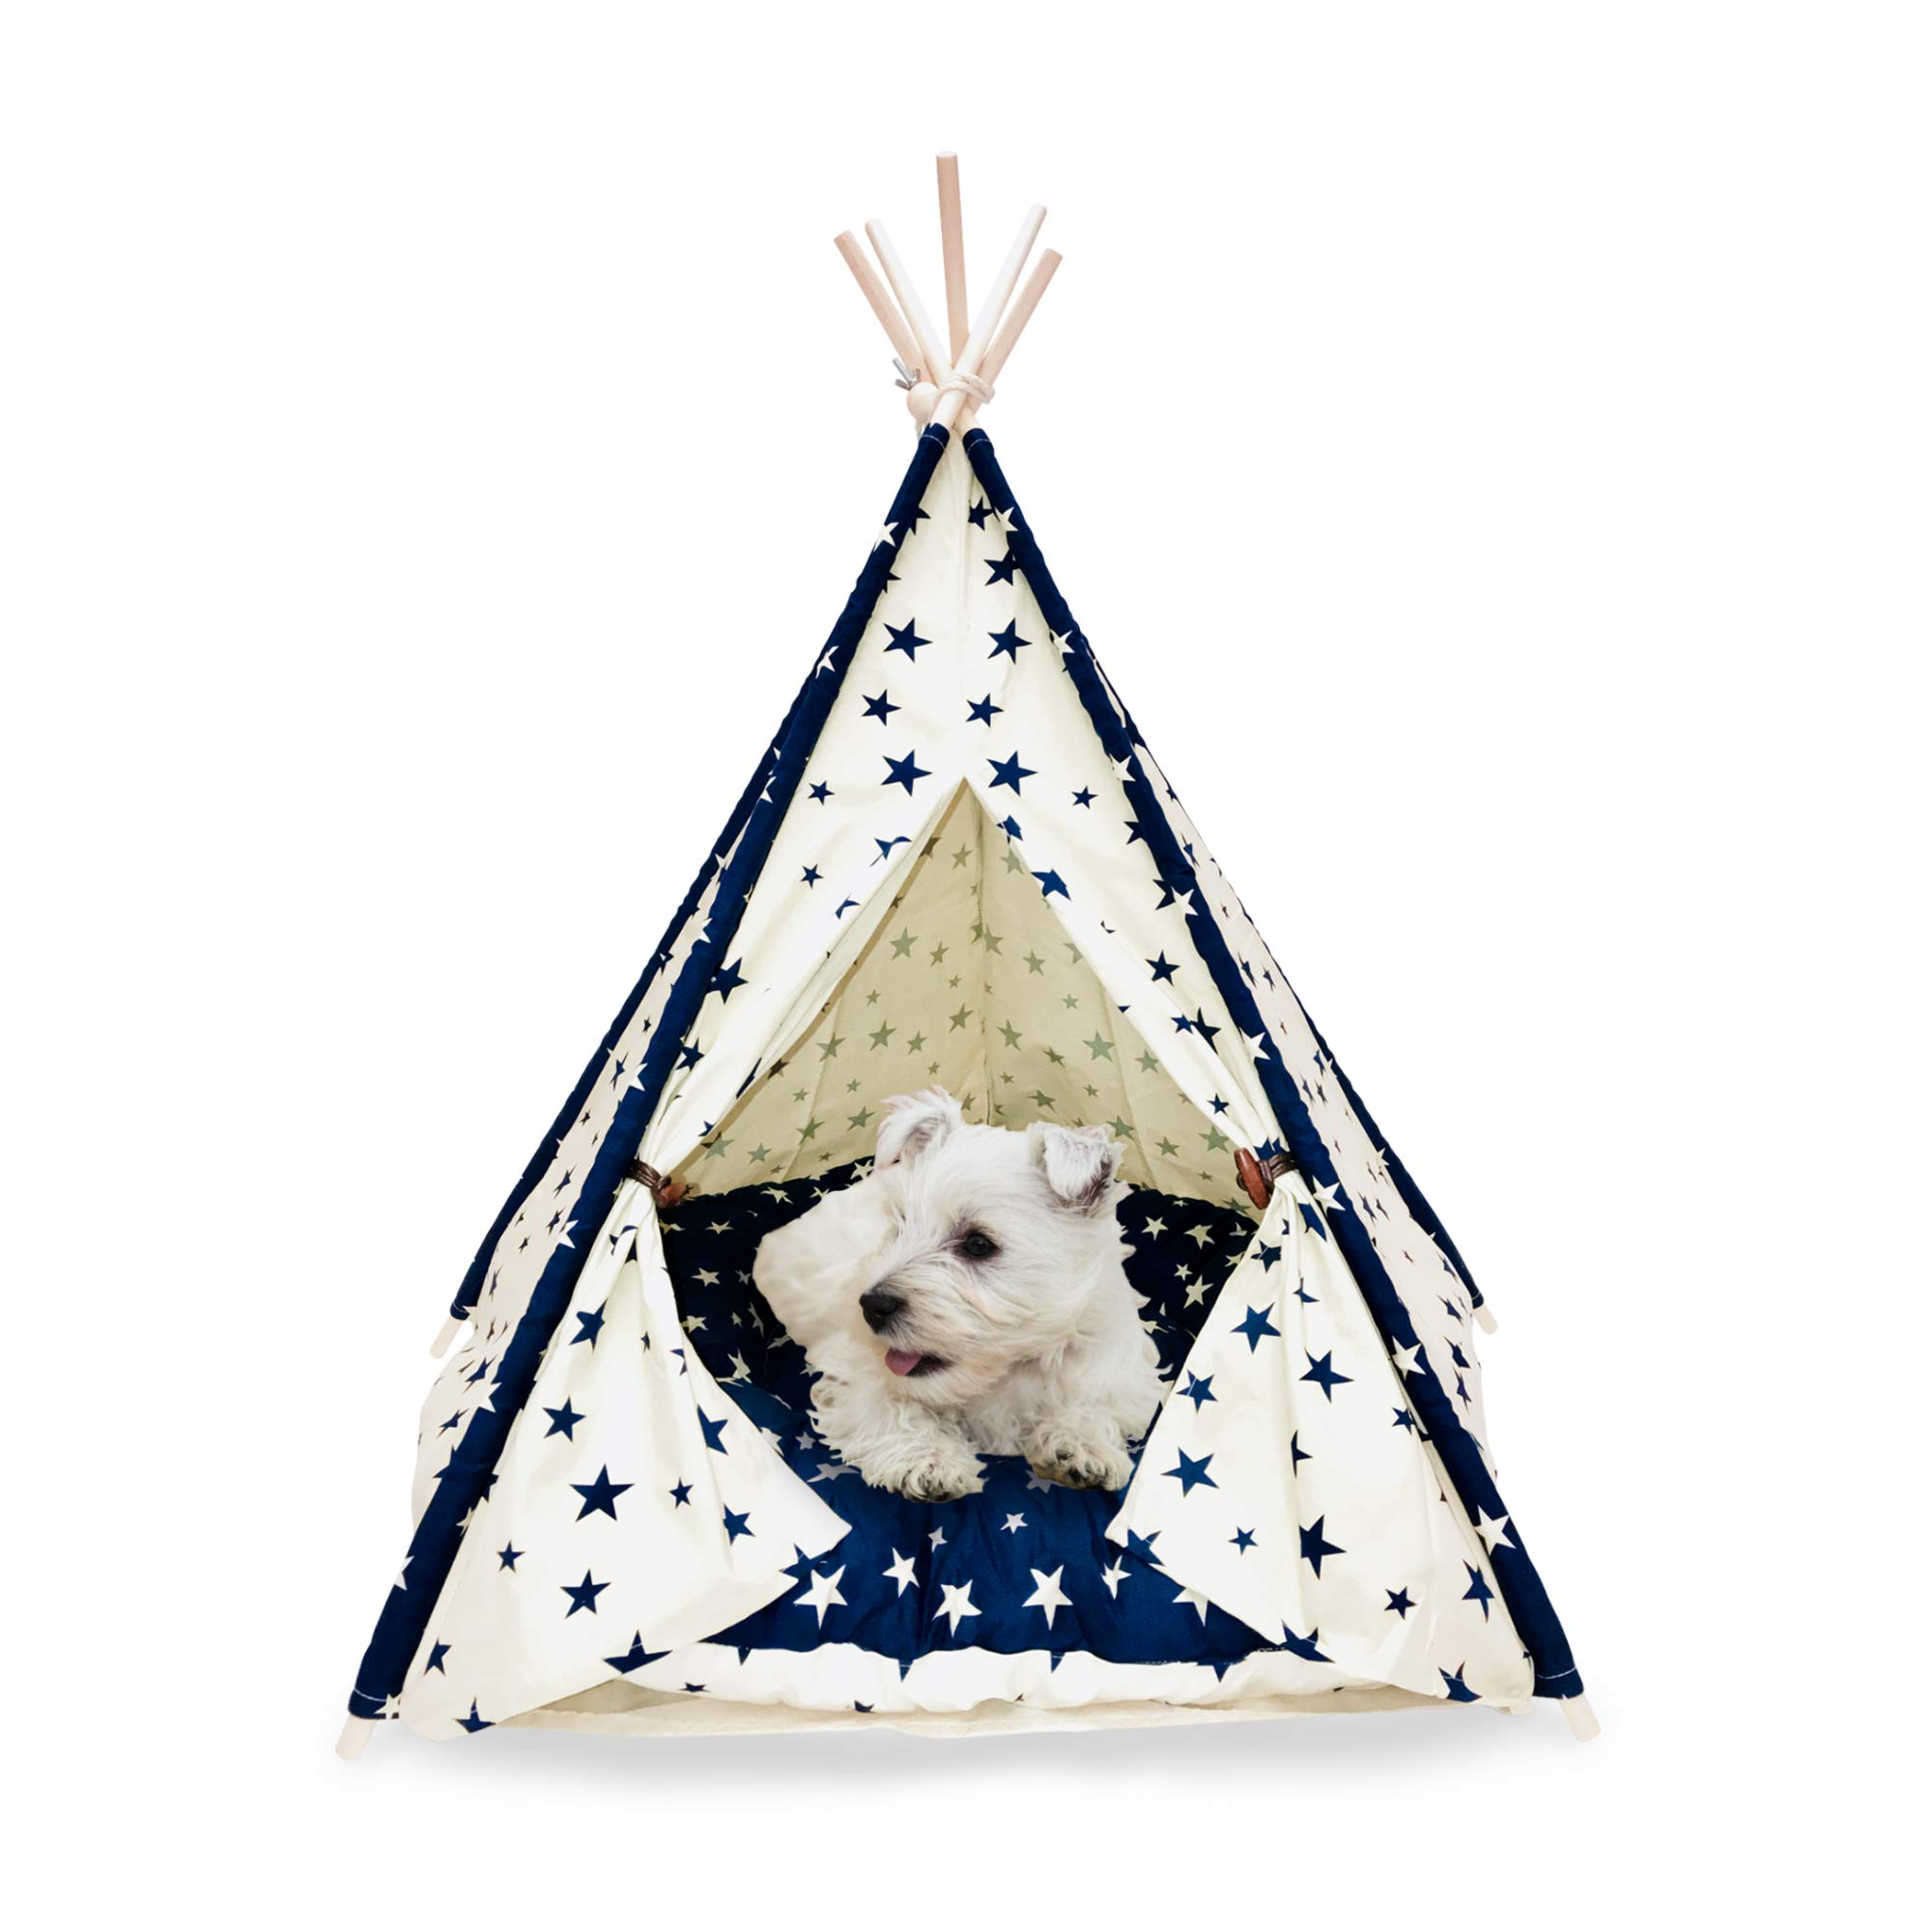 Pet Teepee with Cushion, Small Animals Bed Teepee Tent, Dog & Cat Bed, Portable Dog Tents & Pet Houses, Teepee Dog & Cat Bed, Pet Tents, Dog House, Perfect for Puppies, Small Dogs, Cats & Rabbits by Mindful Grasshopper